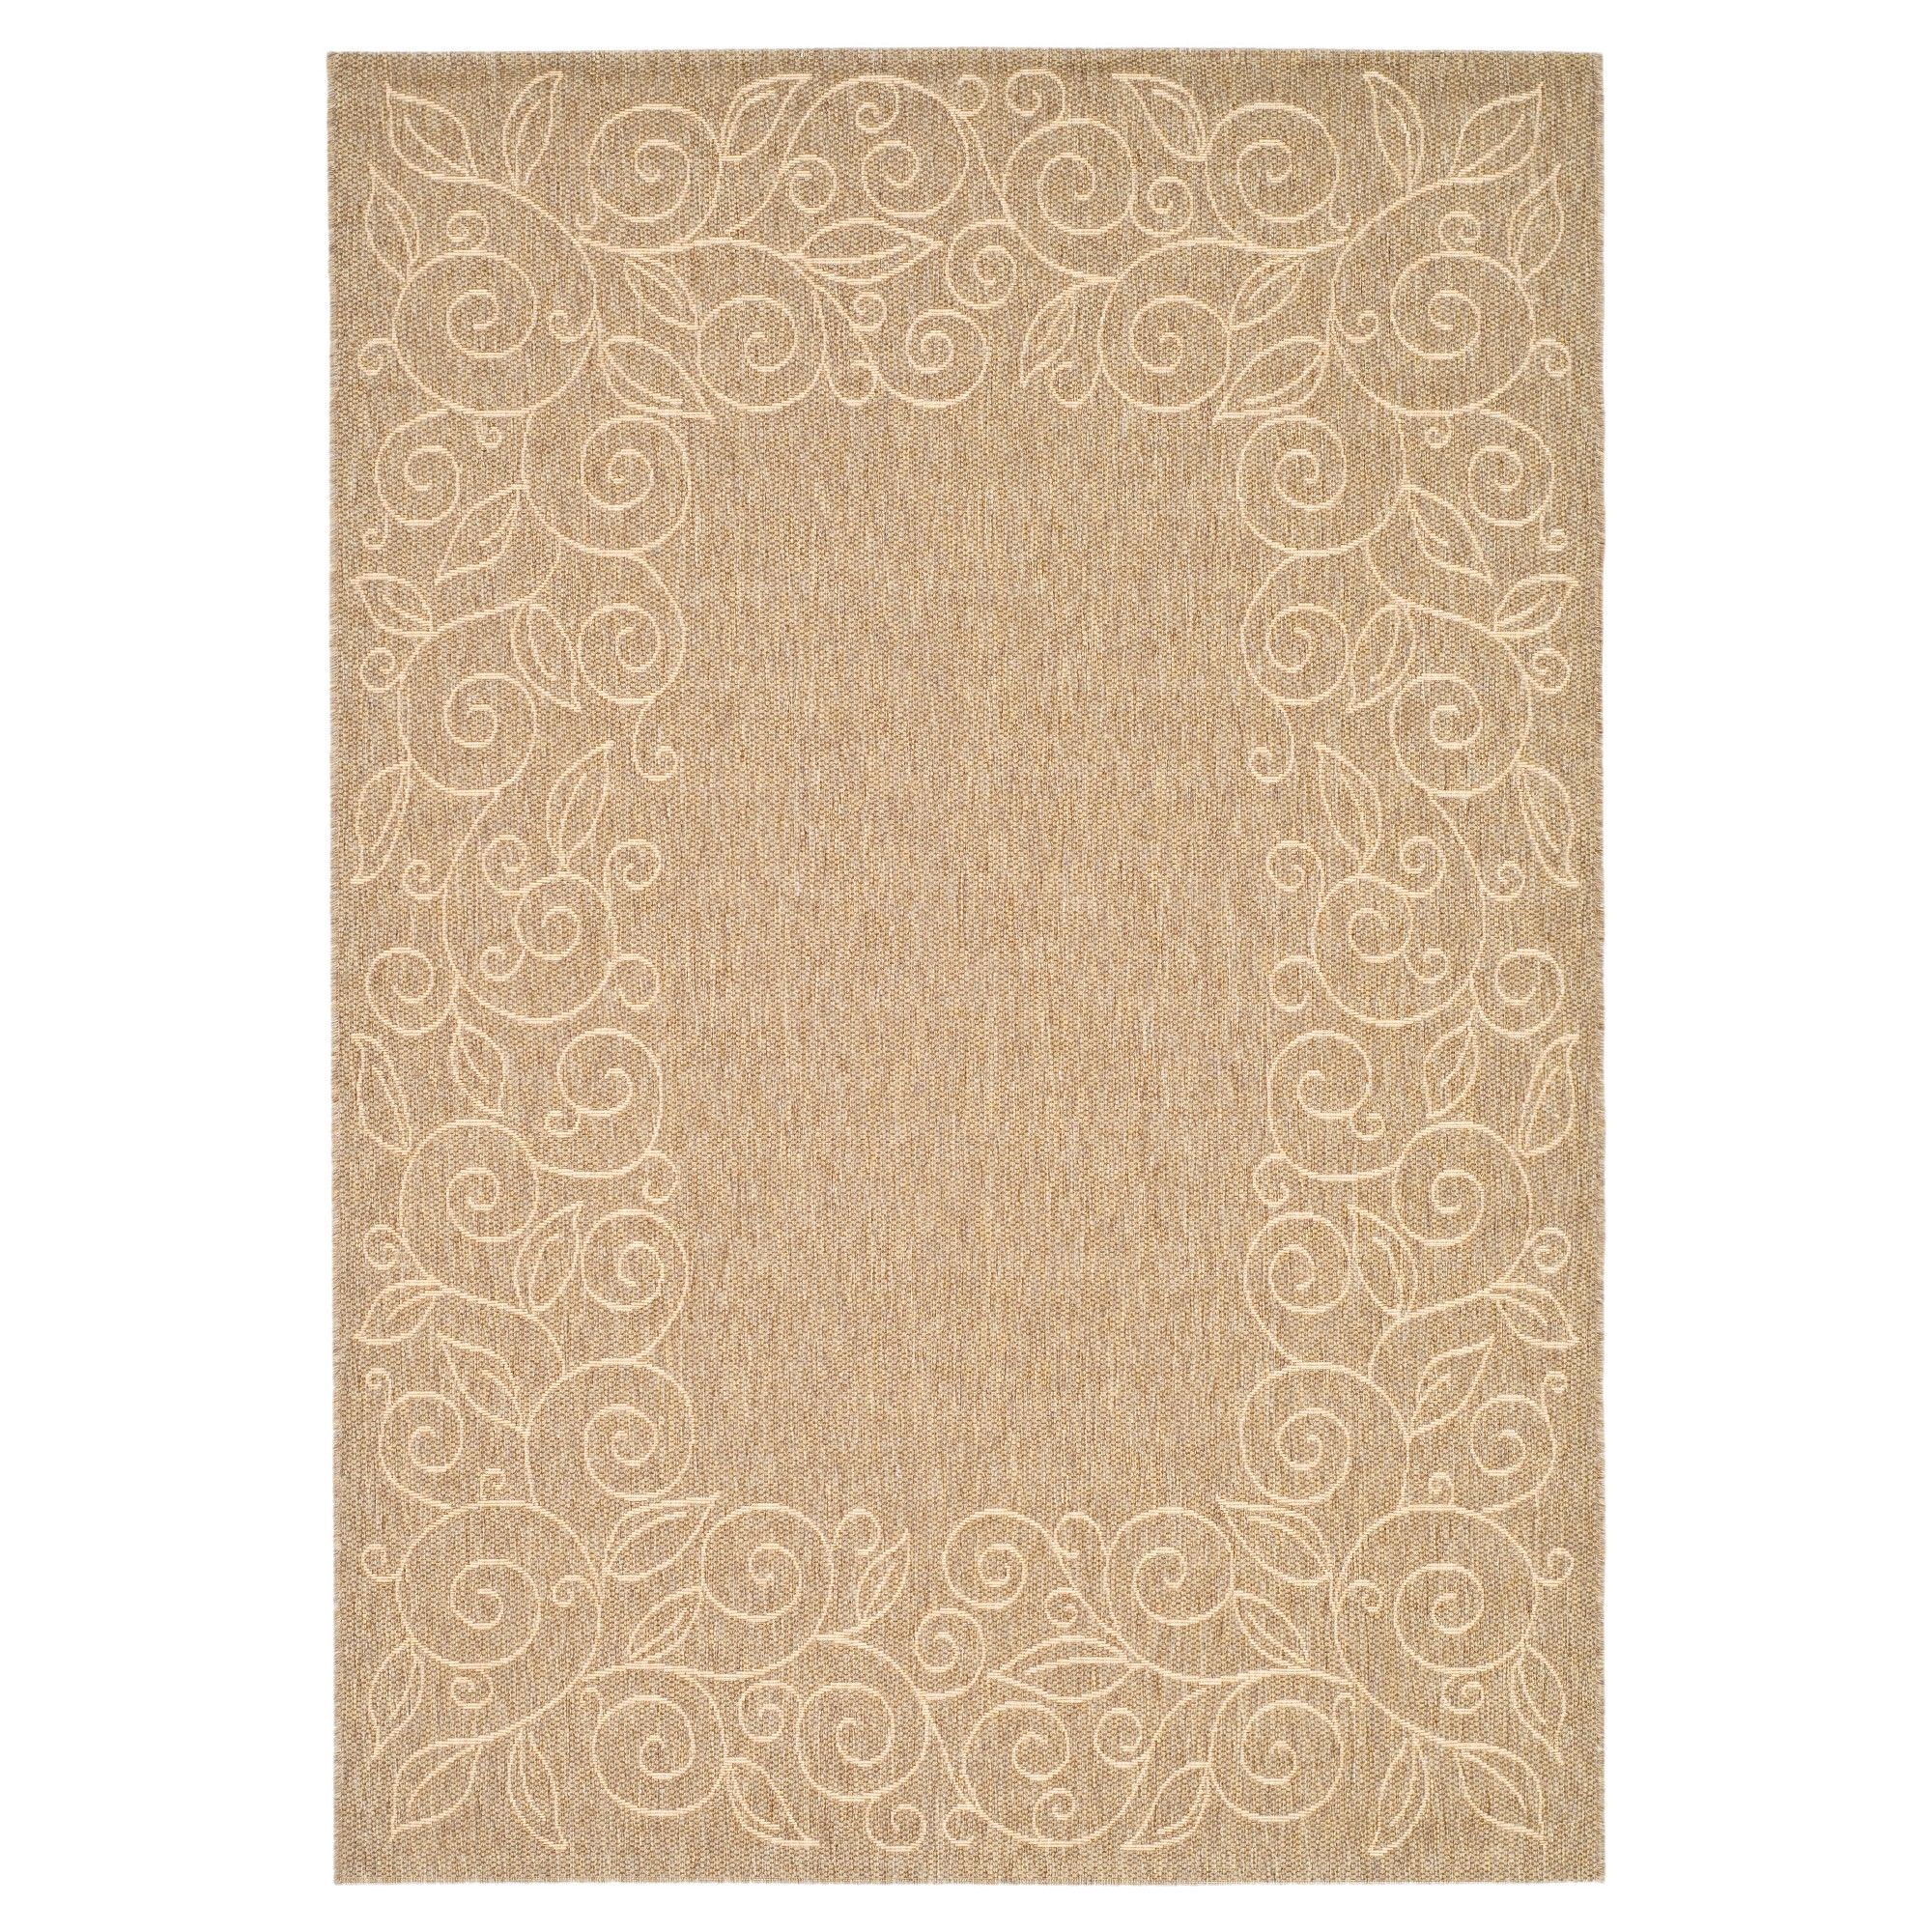 "Glanville Rectangle 5 3"" X 7 7"" Outdoor Patio Rug Dark Beige"